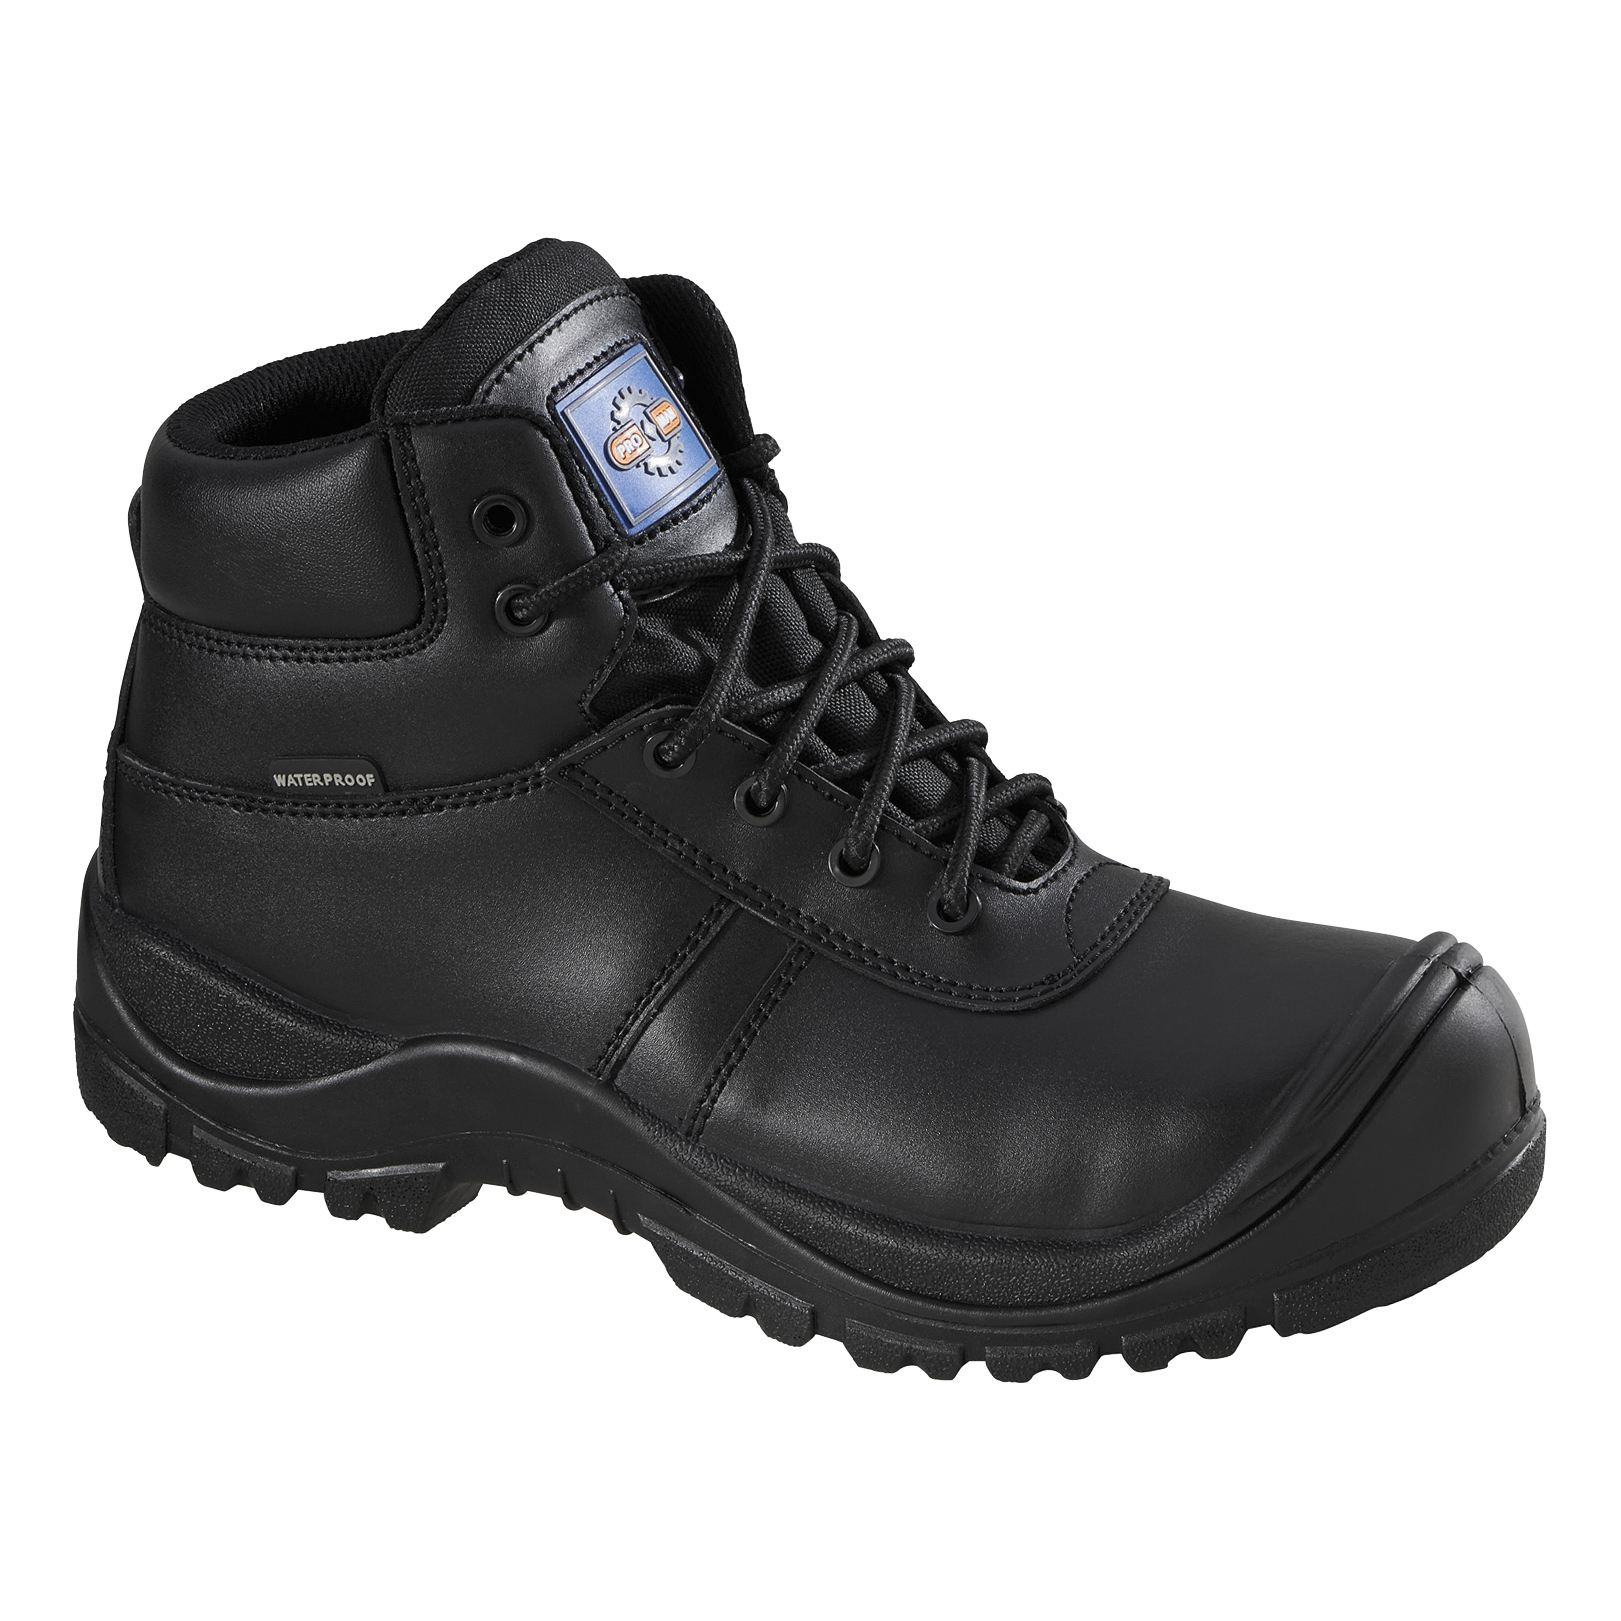 Rockfall Proman Boot Leather Waterproof 100% Non-Metallic Size 10 Black Ref PM4008-10 *5-7 Day Leadtime*